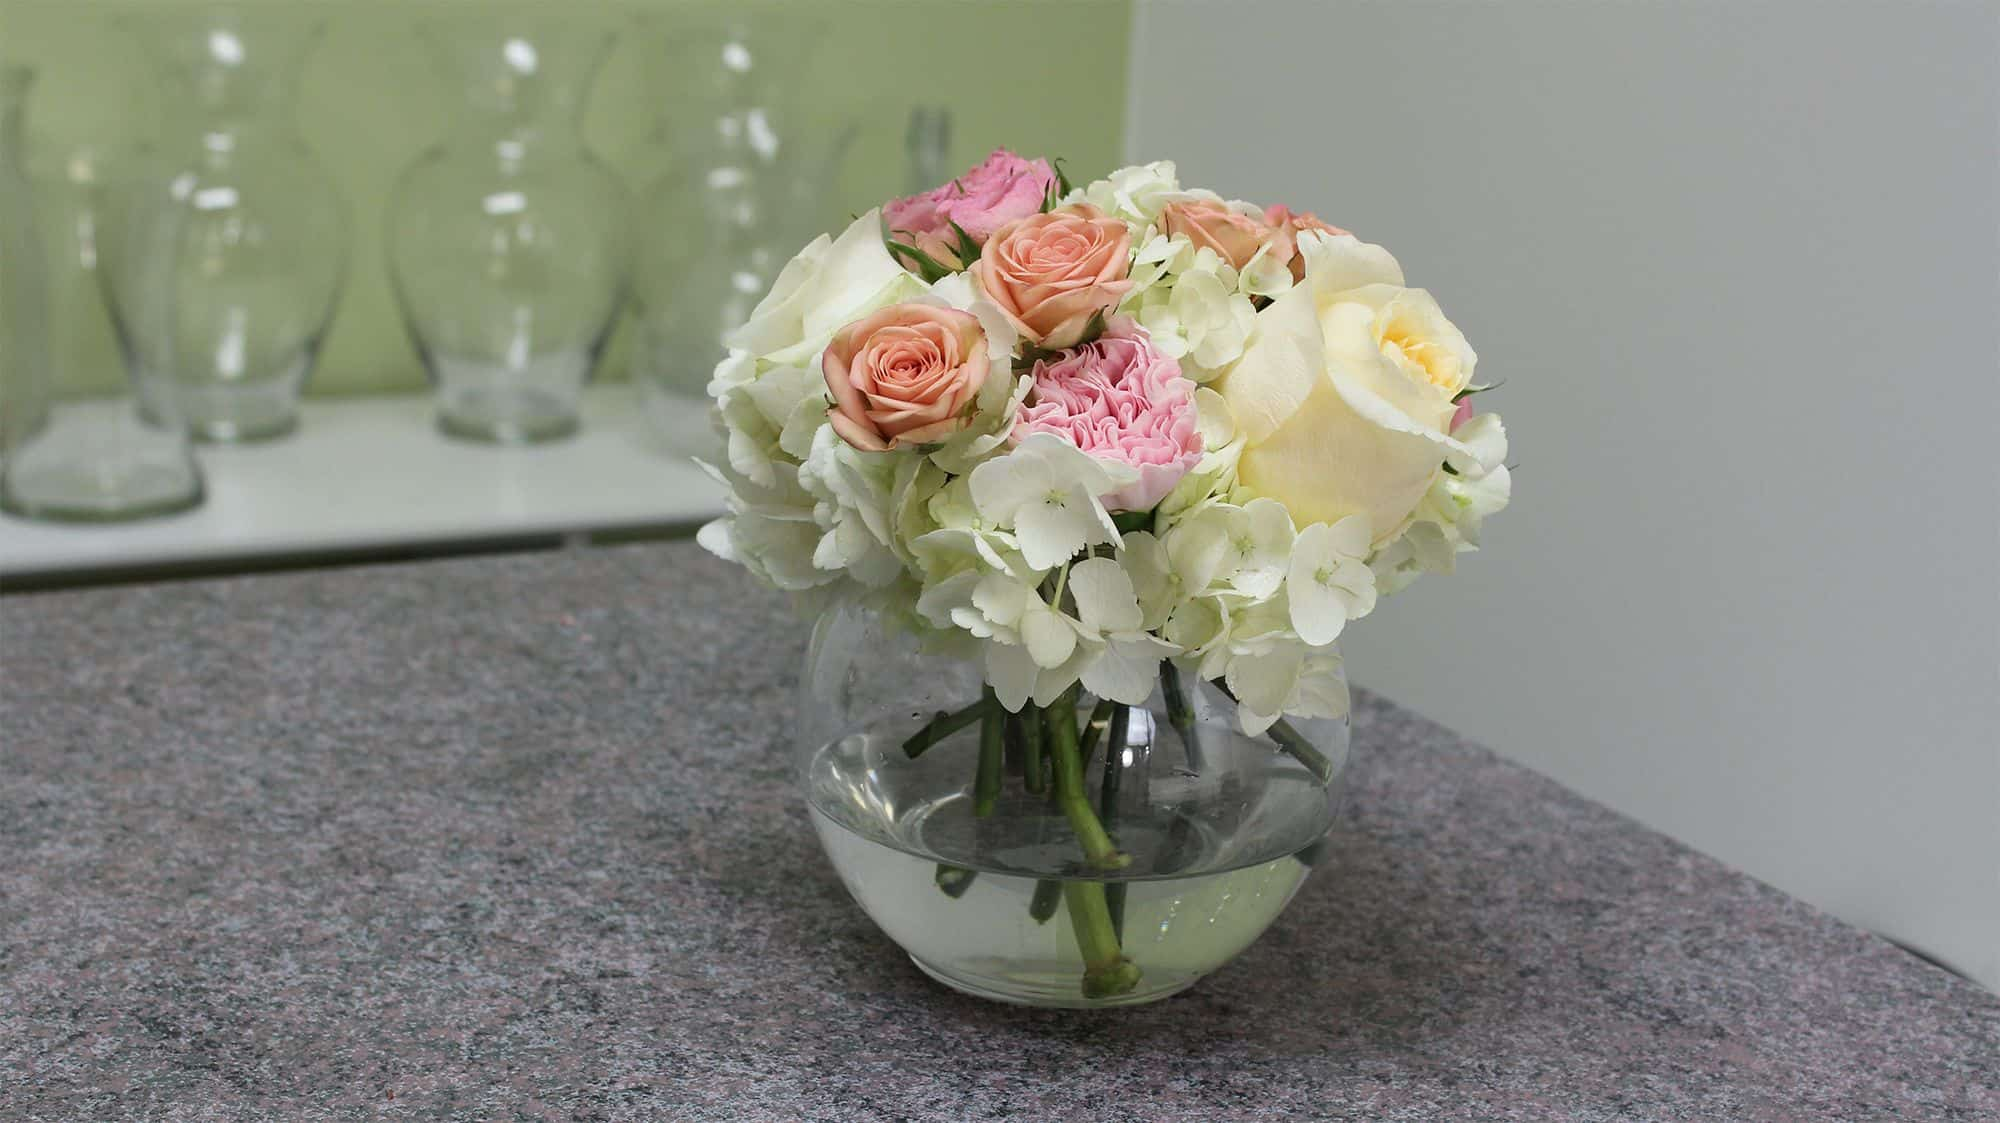 How to make a small hydrangea centerpiece